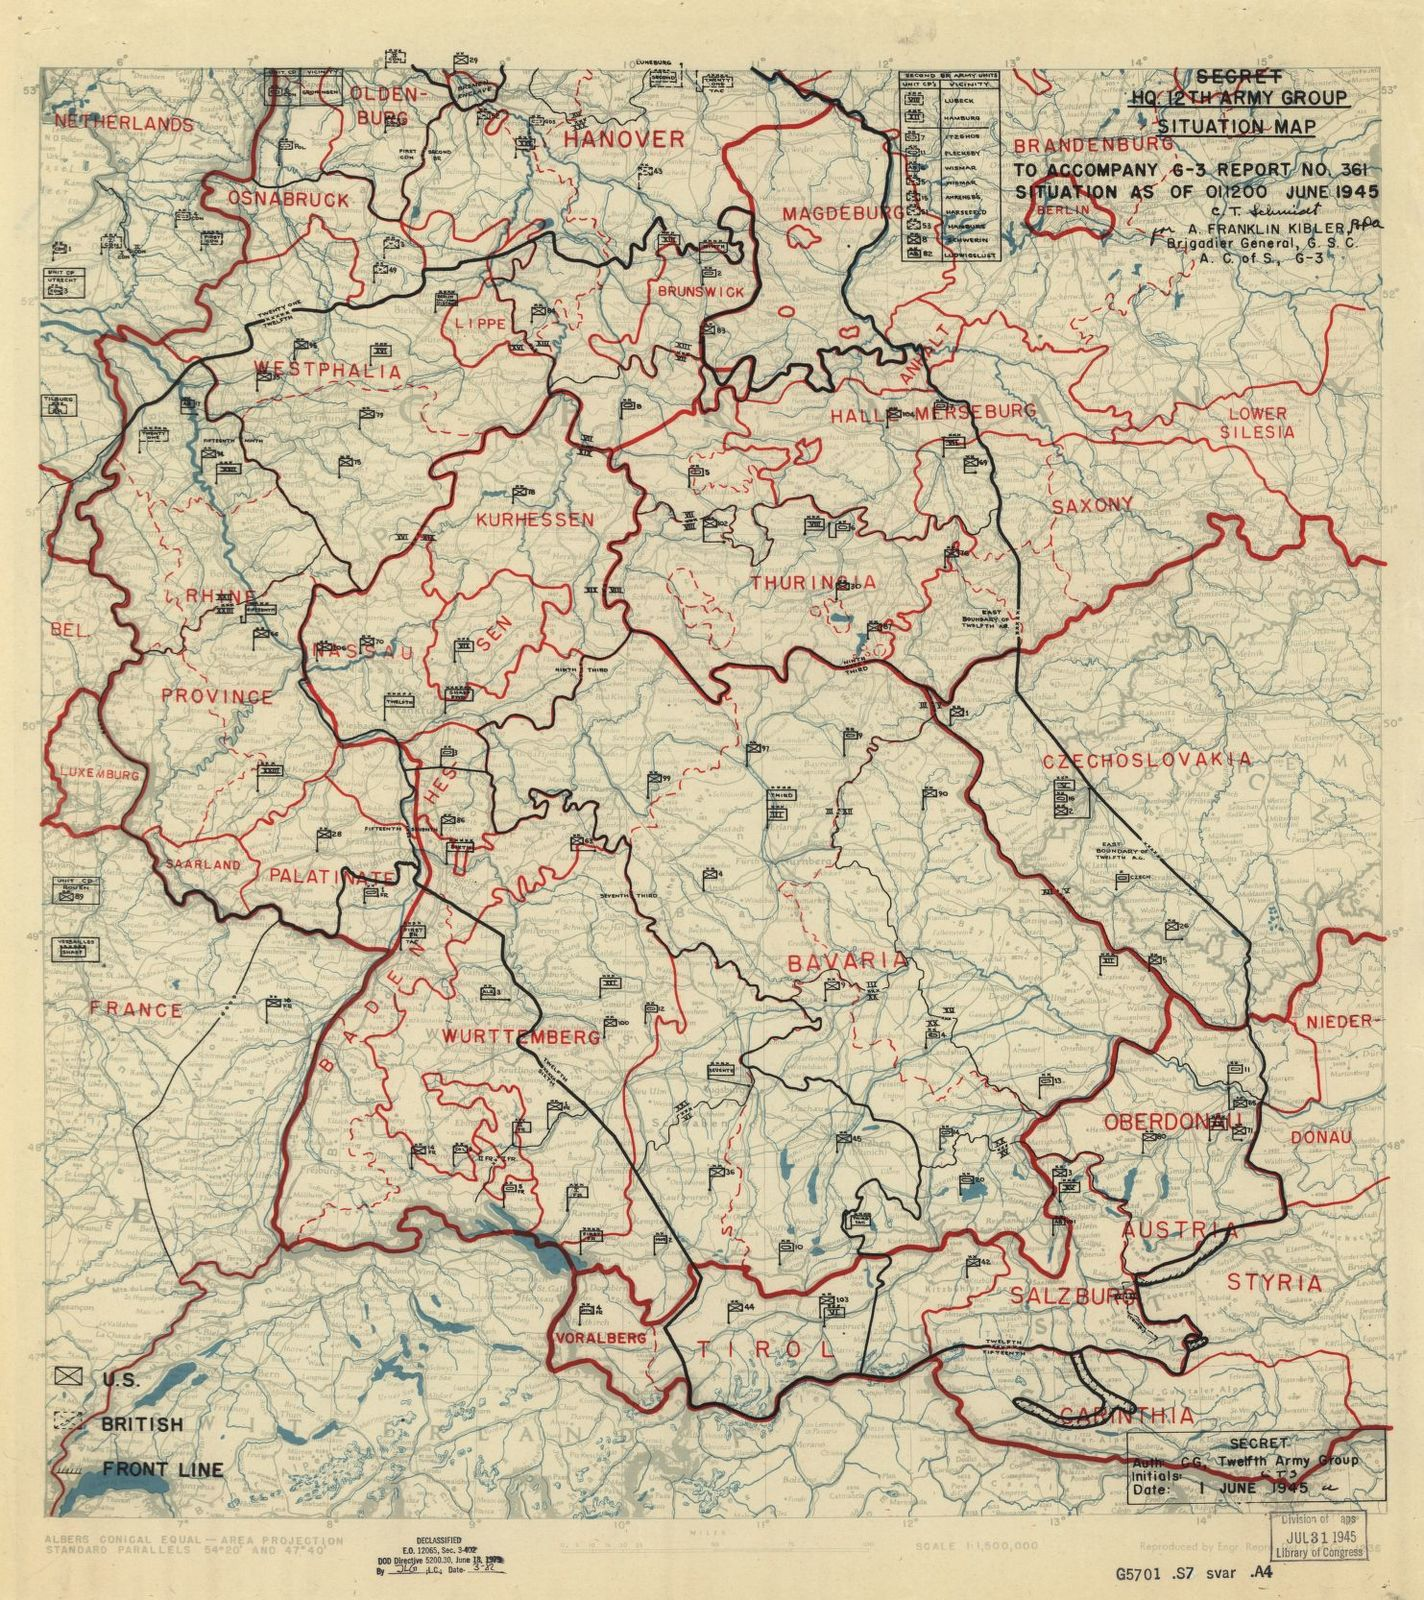 Map Of France Holland And Germany.Hq Twelfth Army Group Situation Map Battle Of The Bulge France